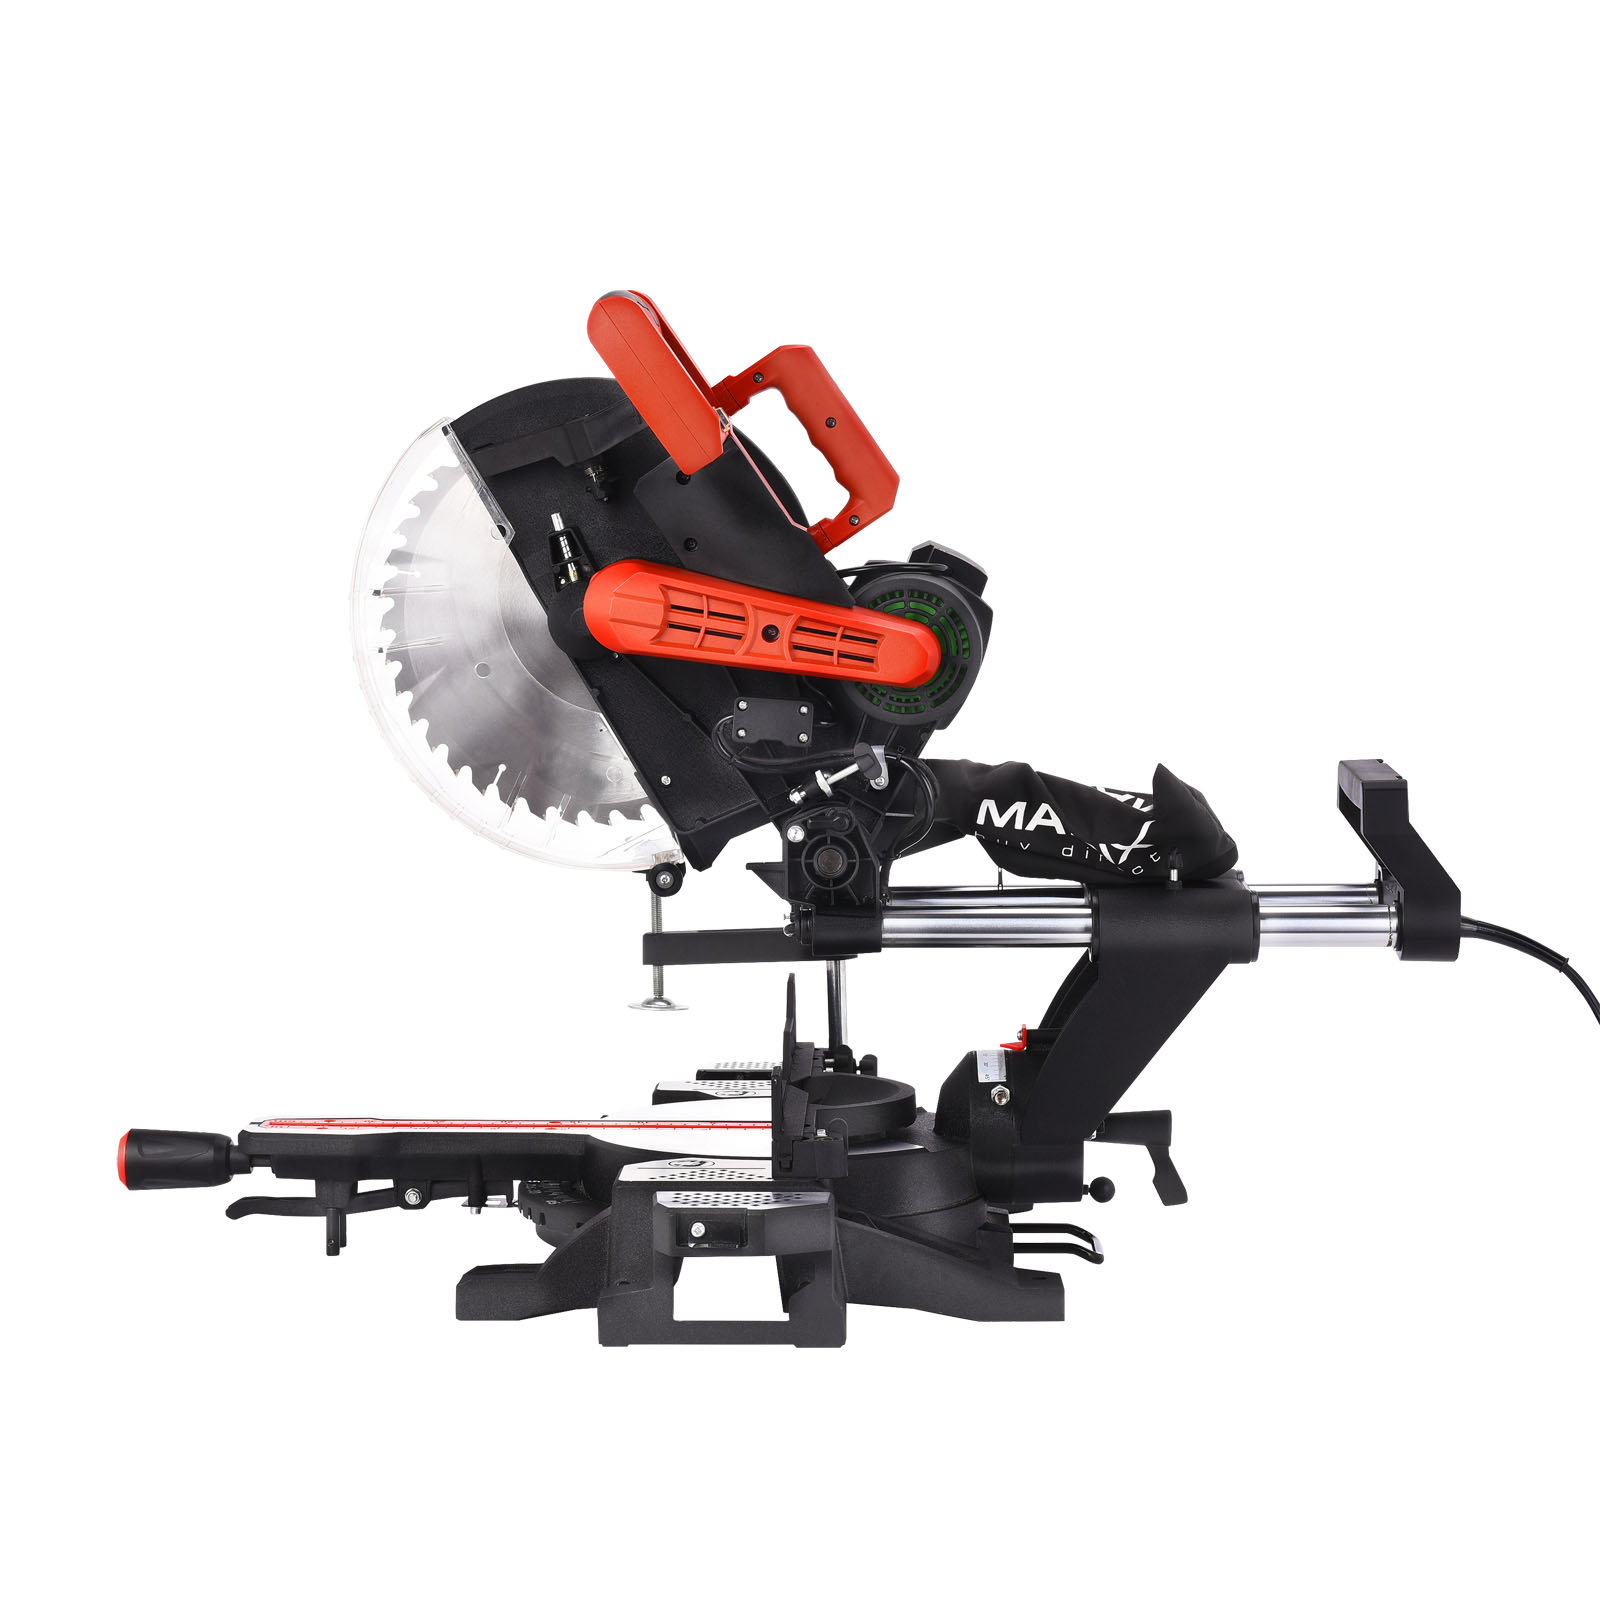 New-Matrix-305MM-12-034-Sliding-Compound-Mitre-Saw-Belt-Driven-Drop-Saw-Cut-Off-Saw